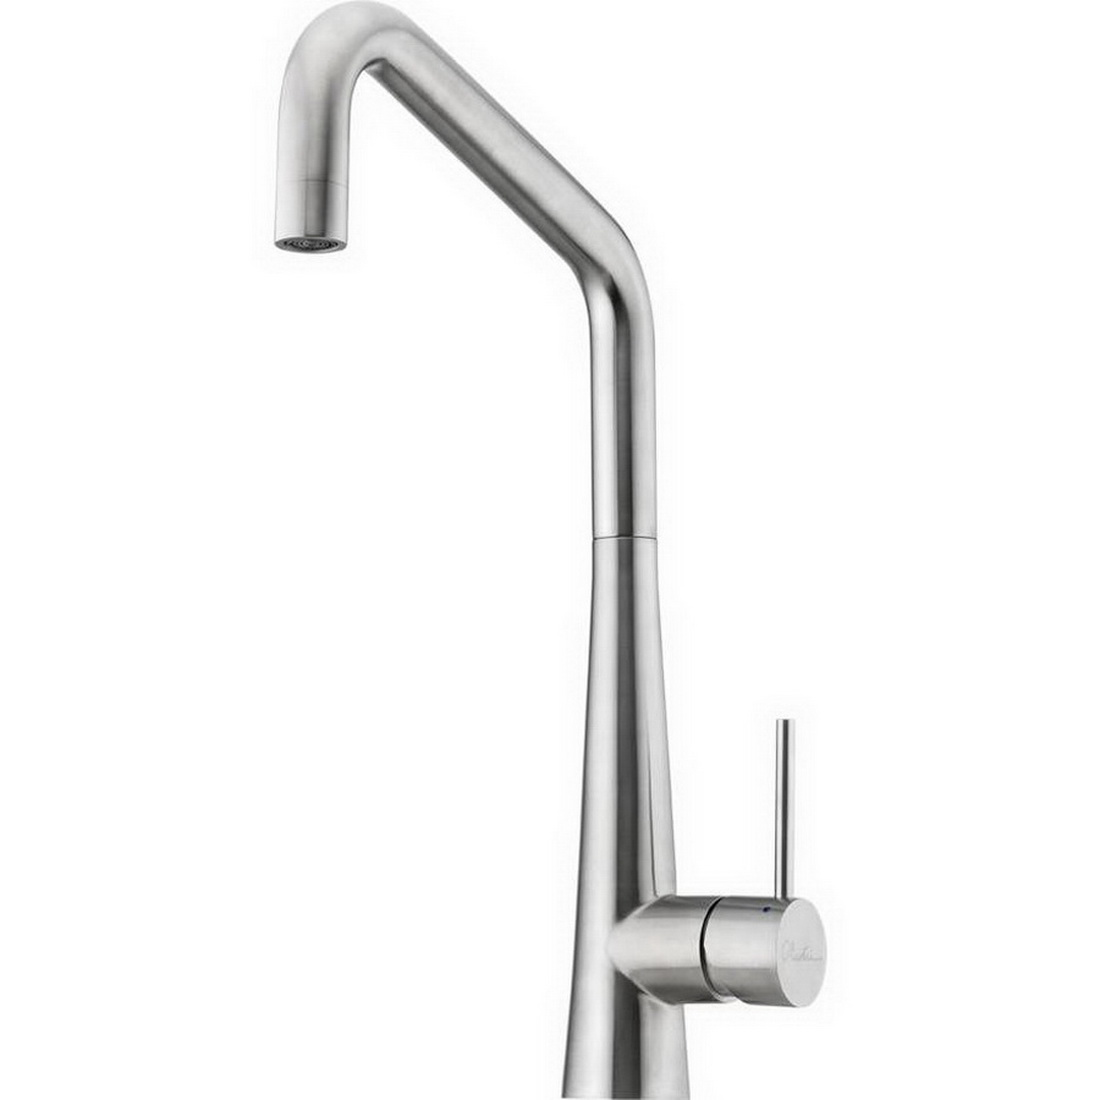 Essente Stainless Steel Square Goose Neck Mixer